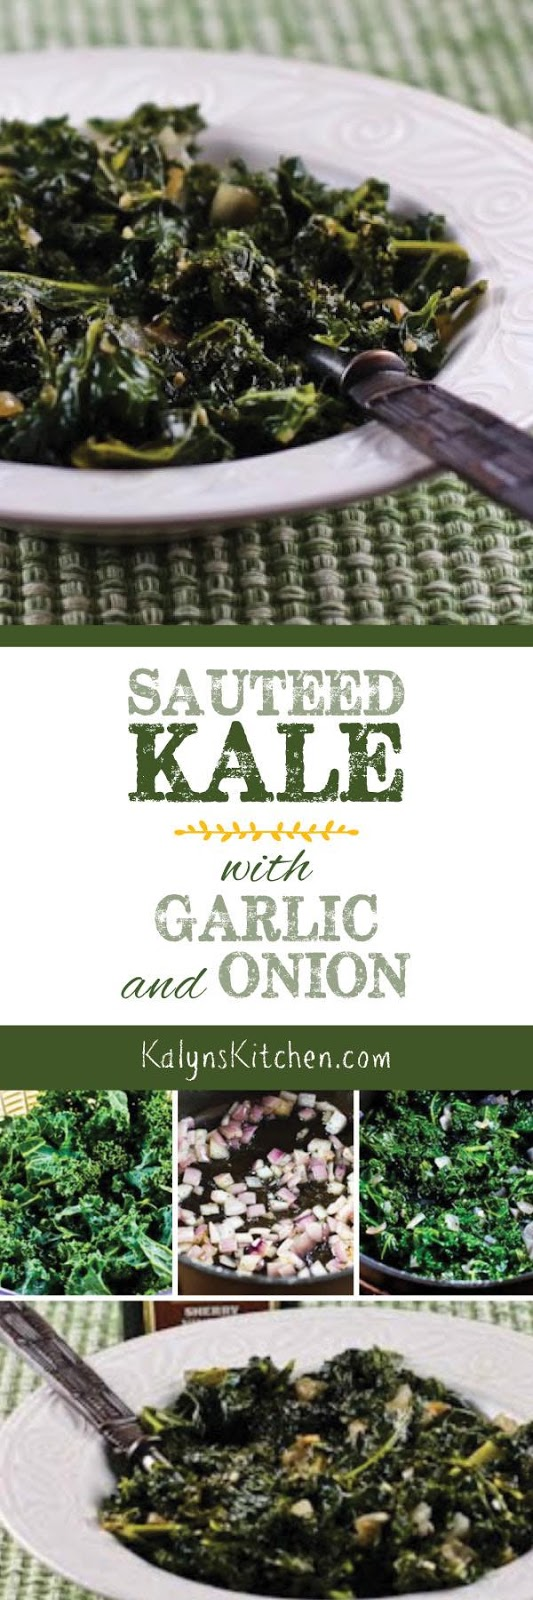 ... Kitchen®: Sauteed Kale with Garlic and Onion (Melting Tuscan Kale